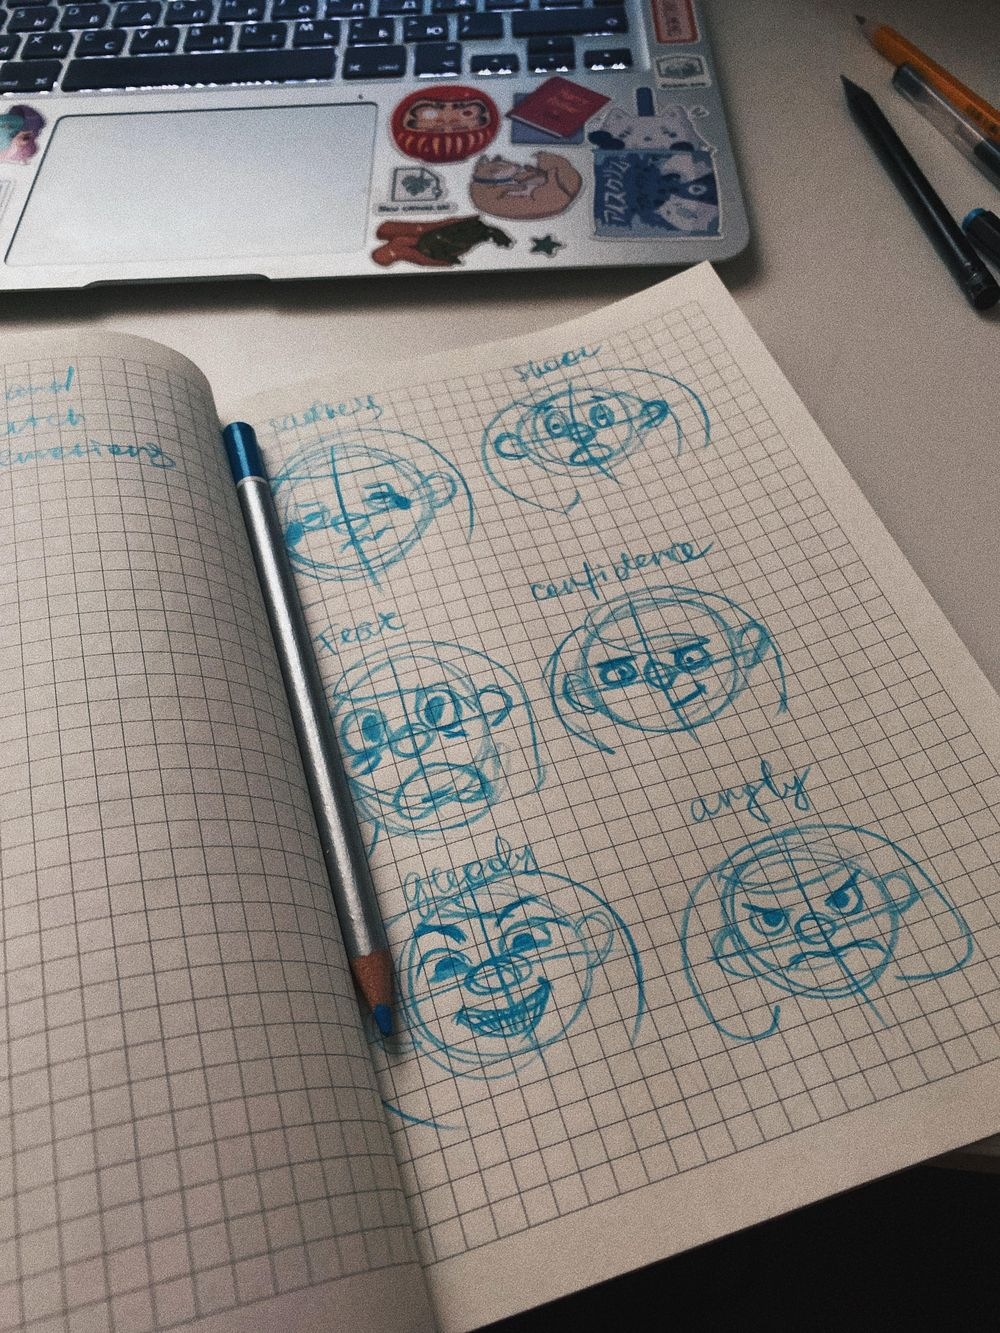 face expressions - image 1 - student project